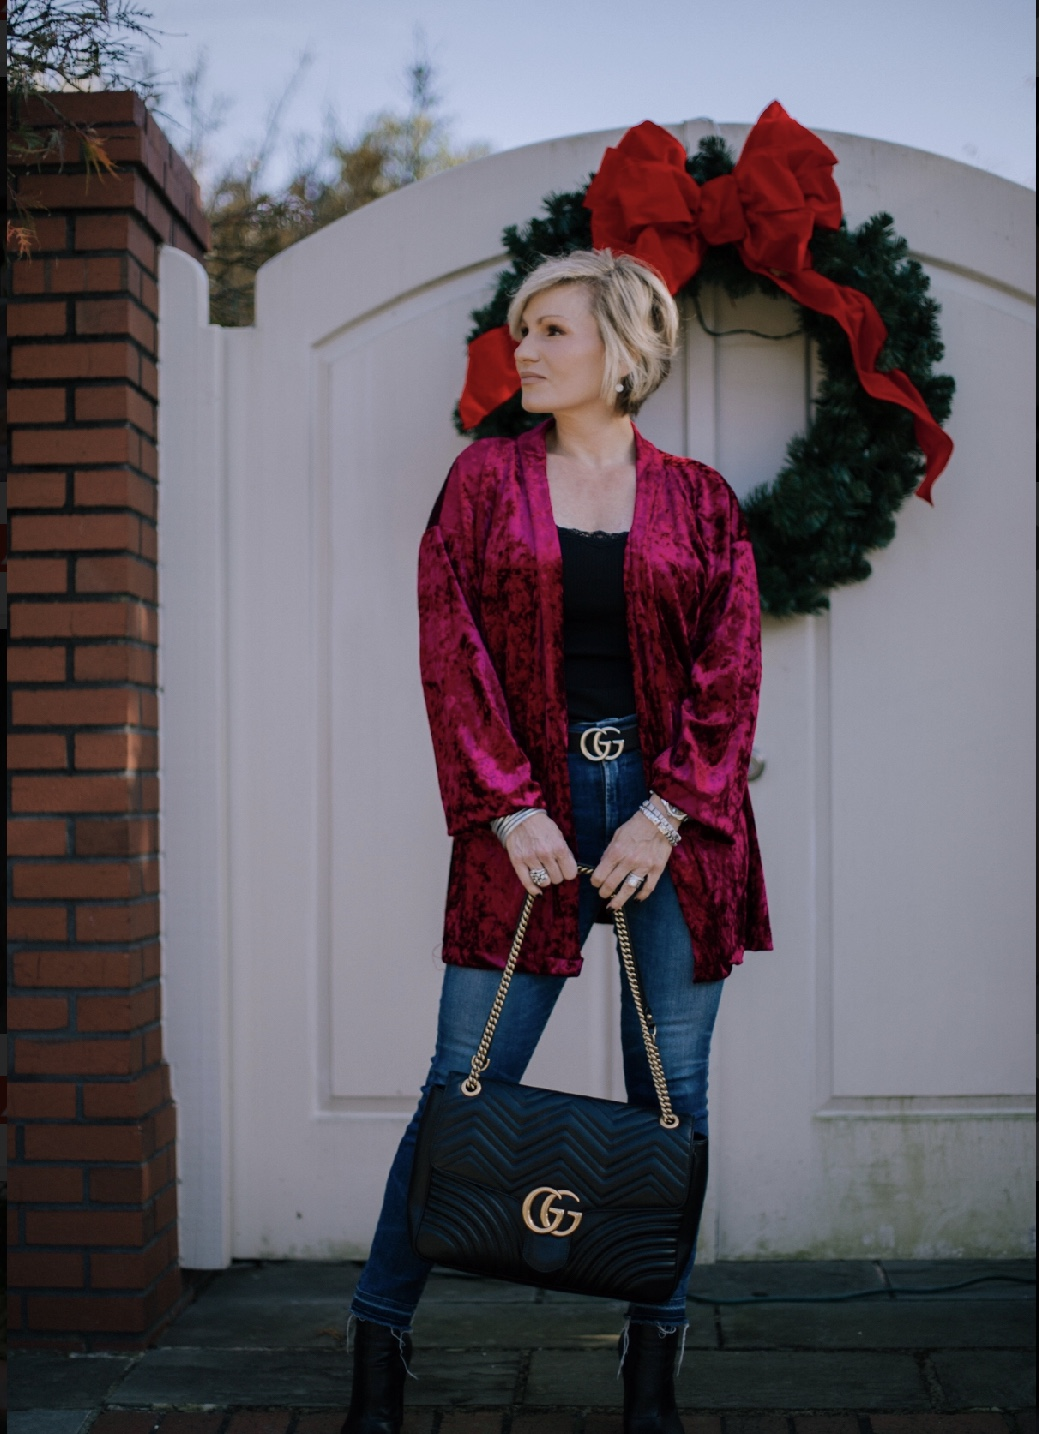 Throw on a simple kimono to transform your everyday jeans into a holiday look perfect for shopping with the girls or a Christmas brunch. Shop my velvet kimono picks here:  http://liketk.it/2ytC9